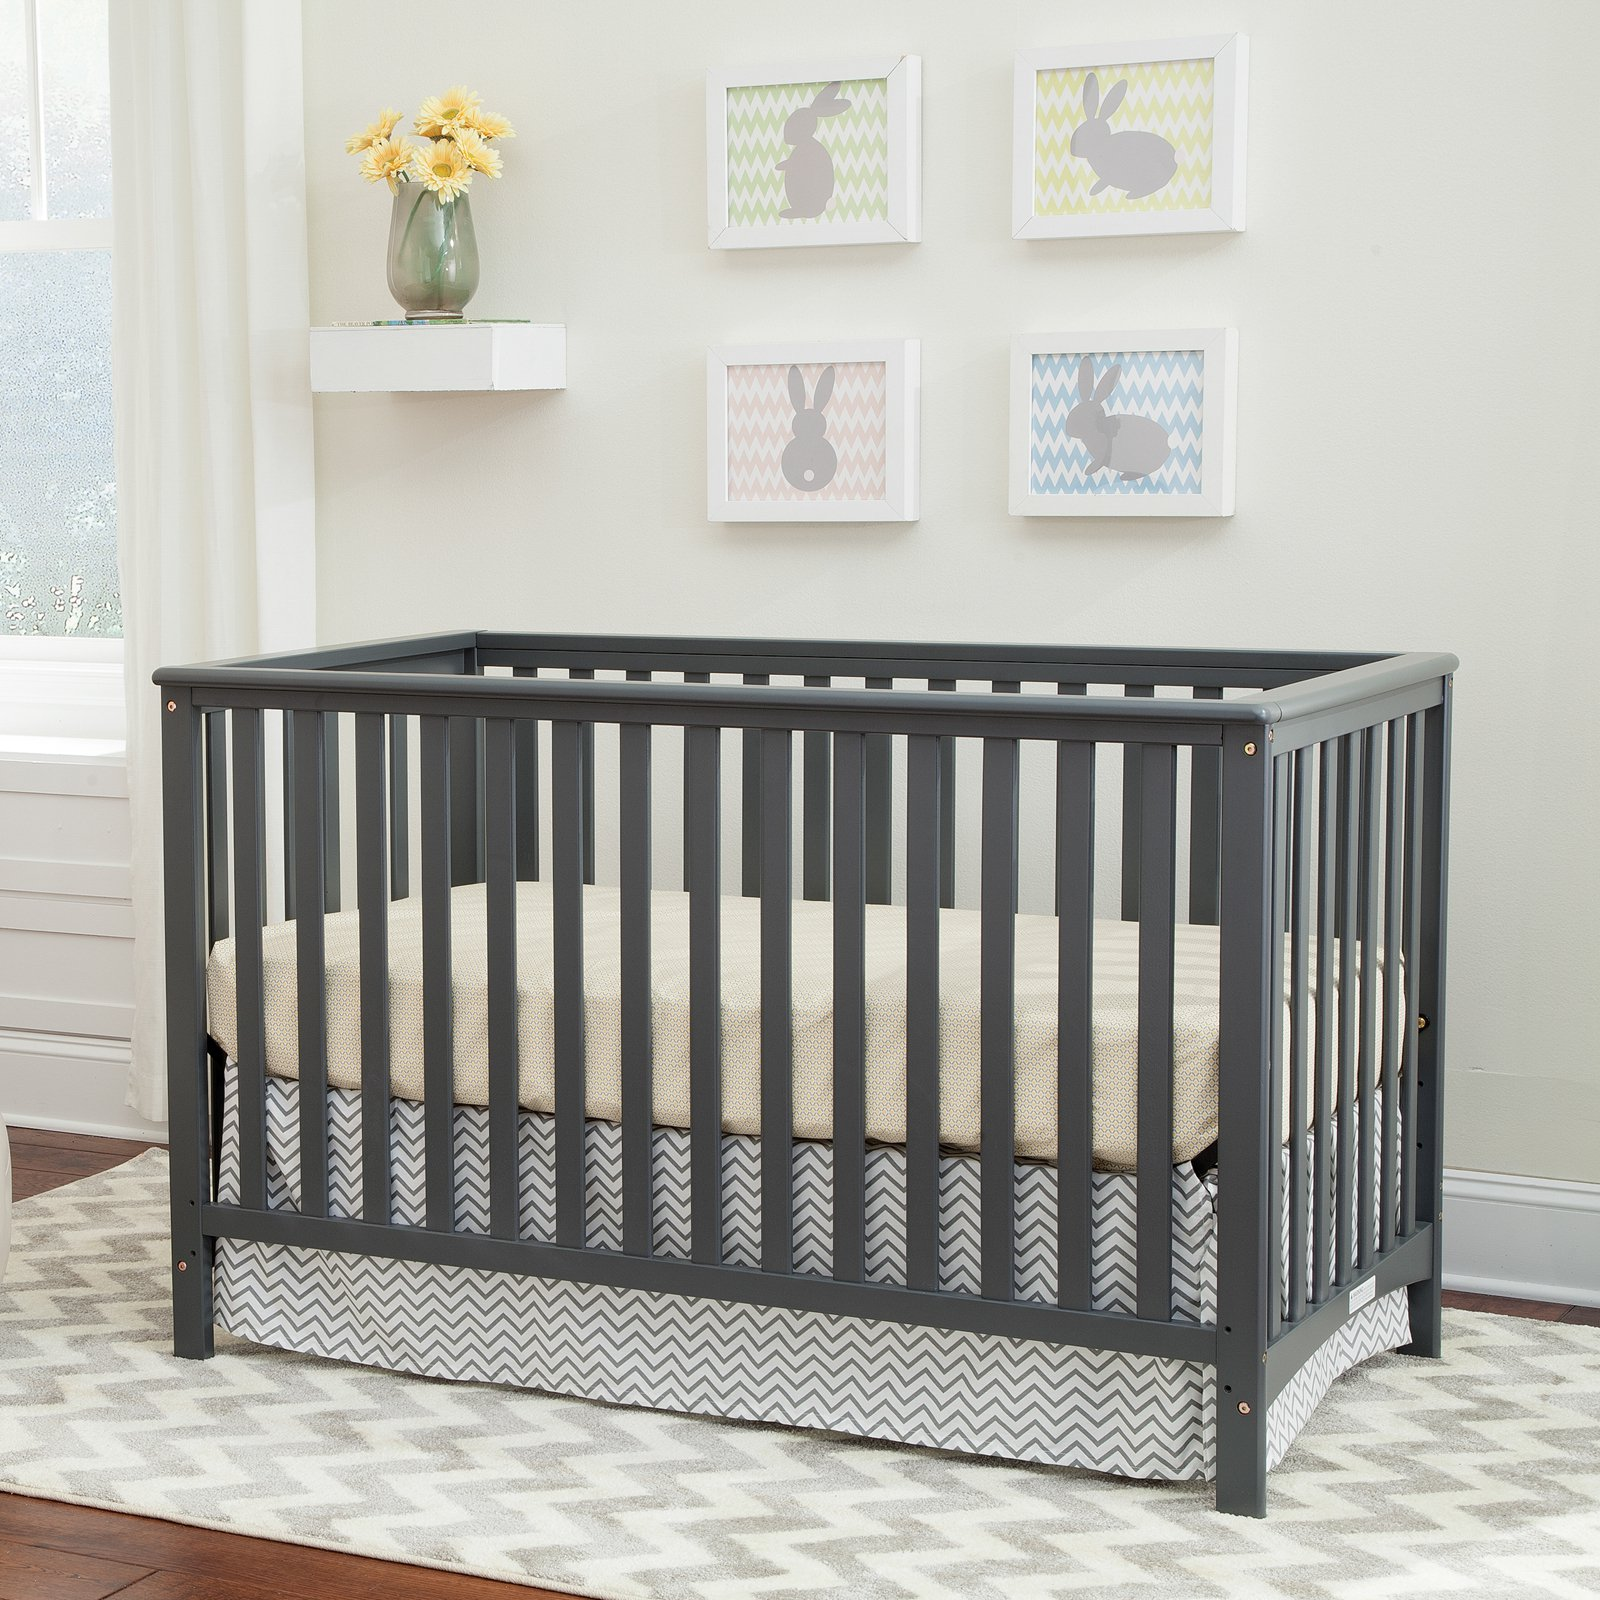 Storkcraft Hillcrest 4 In 1 Convertible Crib Gray   Walmart.com